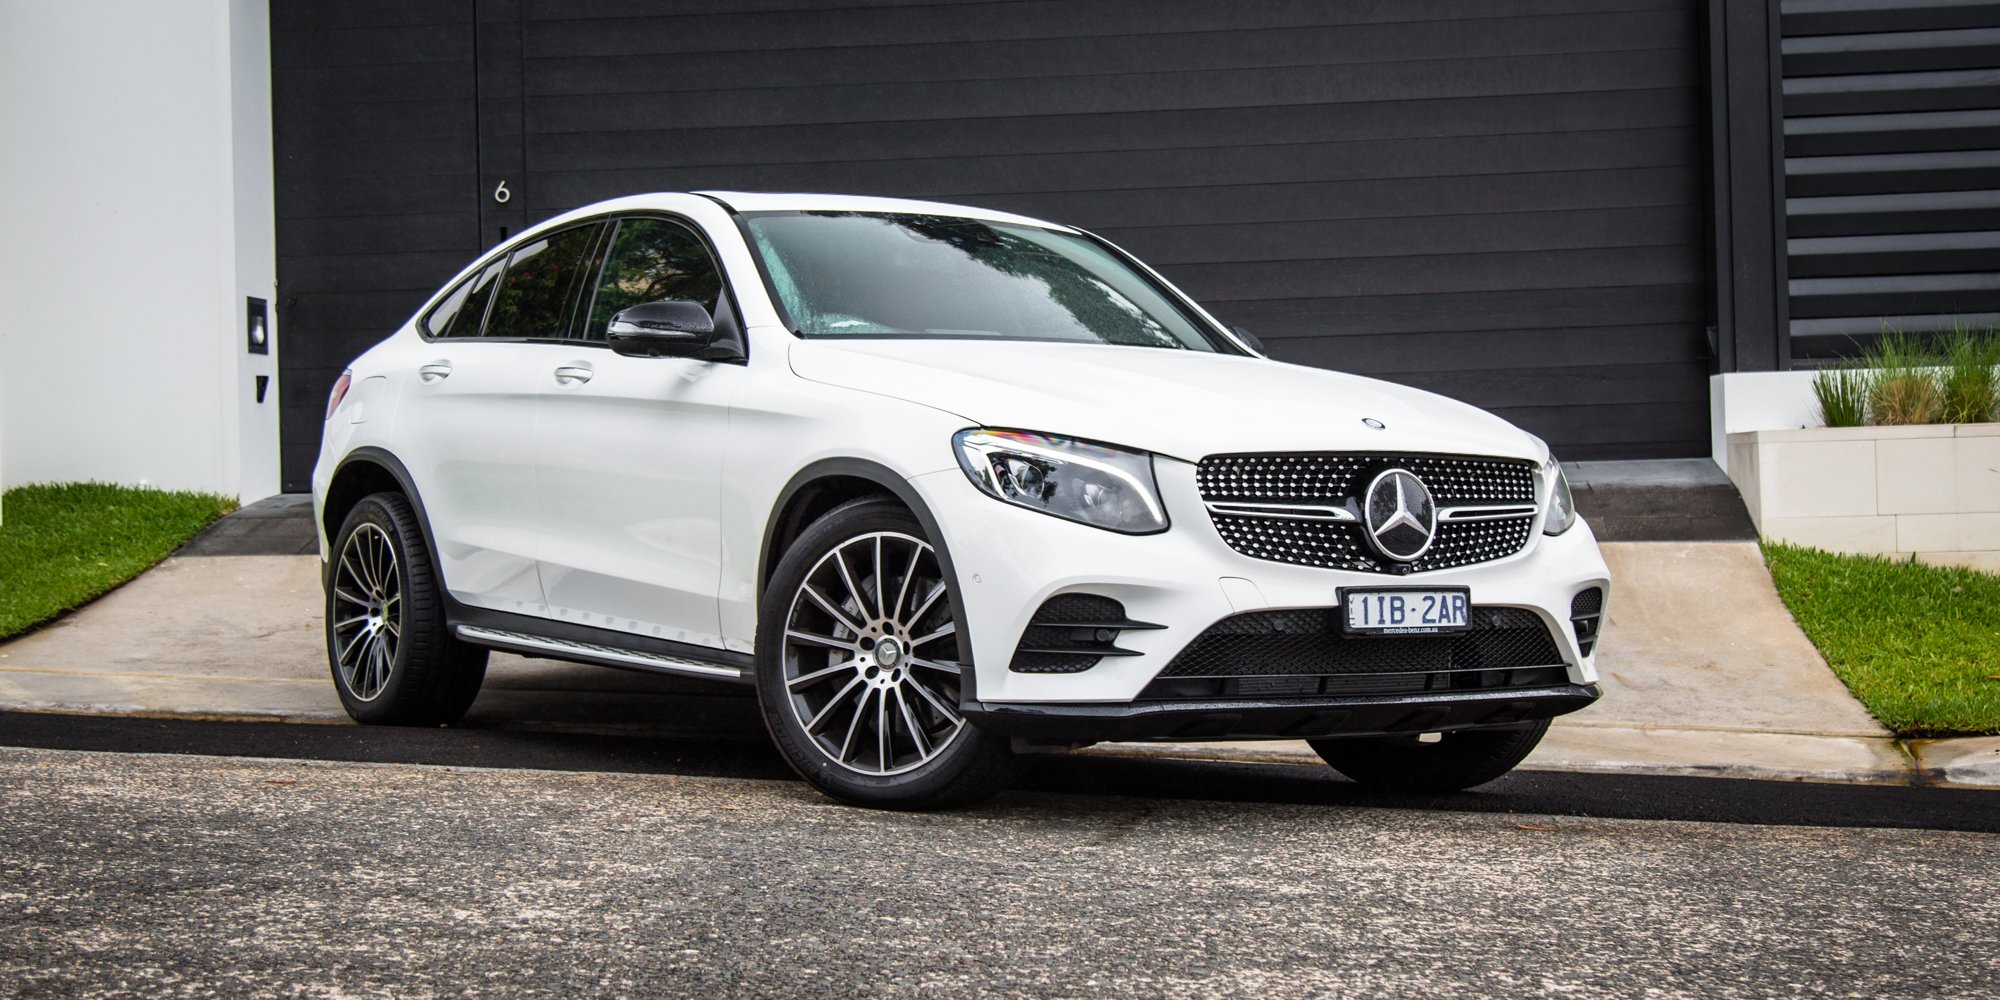 2017 mercedes benz glc250 coupe review photos caradvice for Mercedes benz reliability ratings